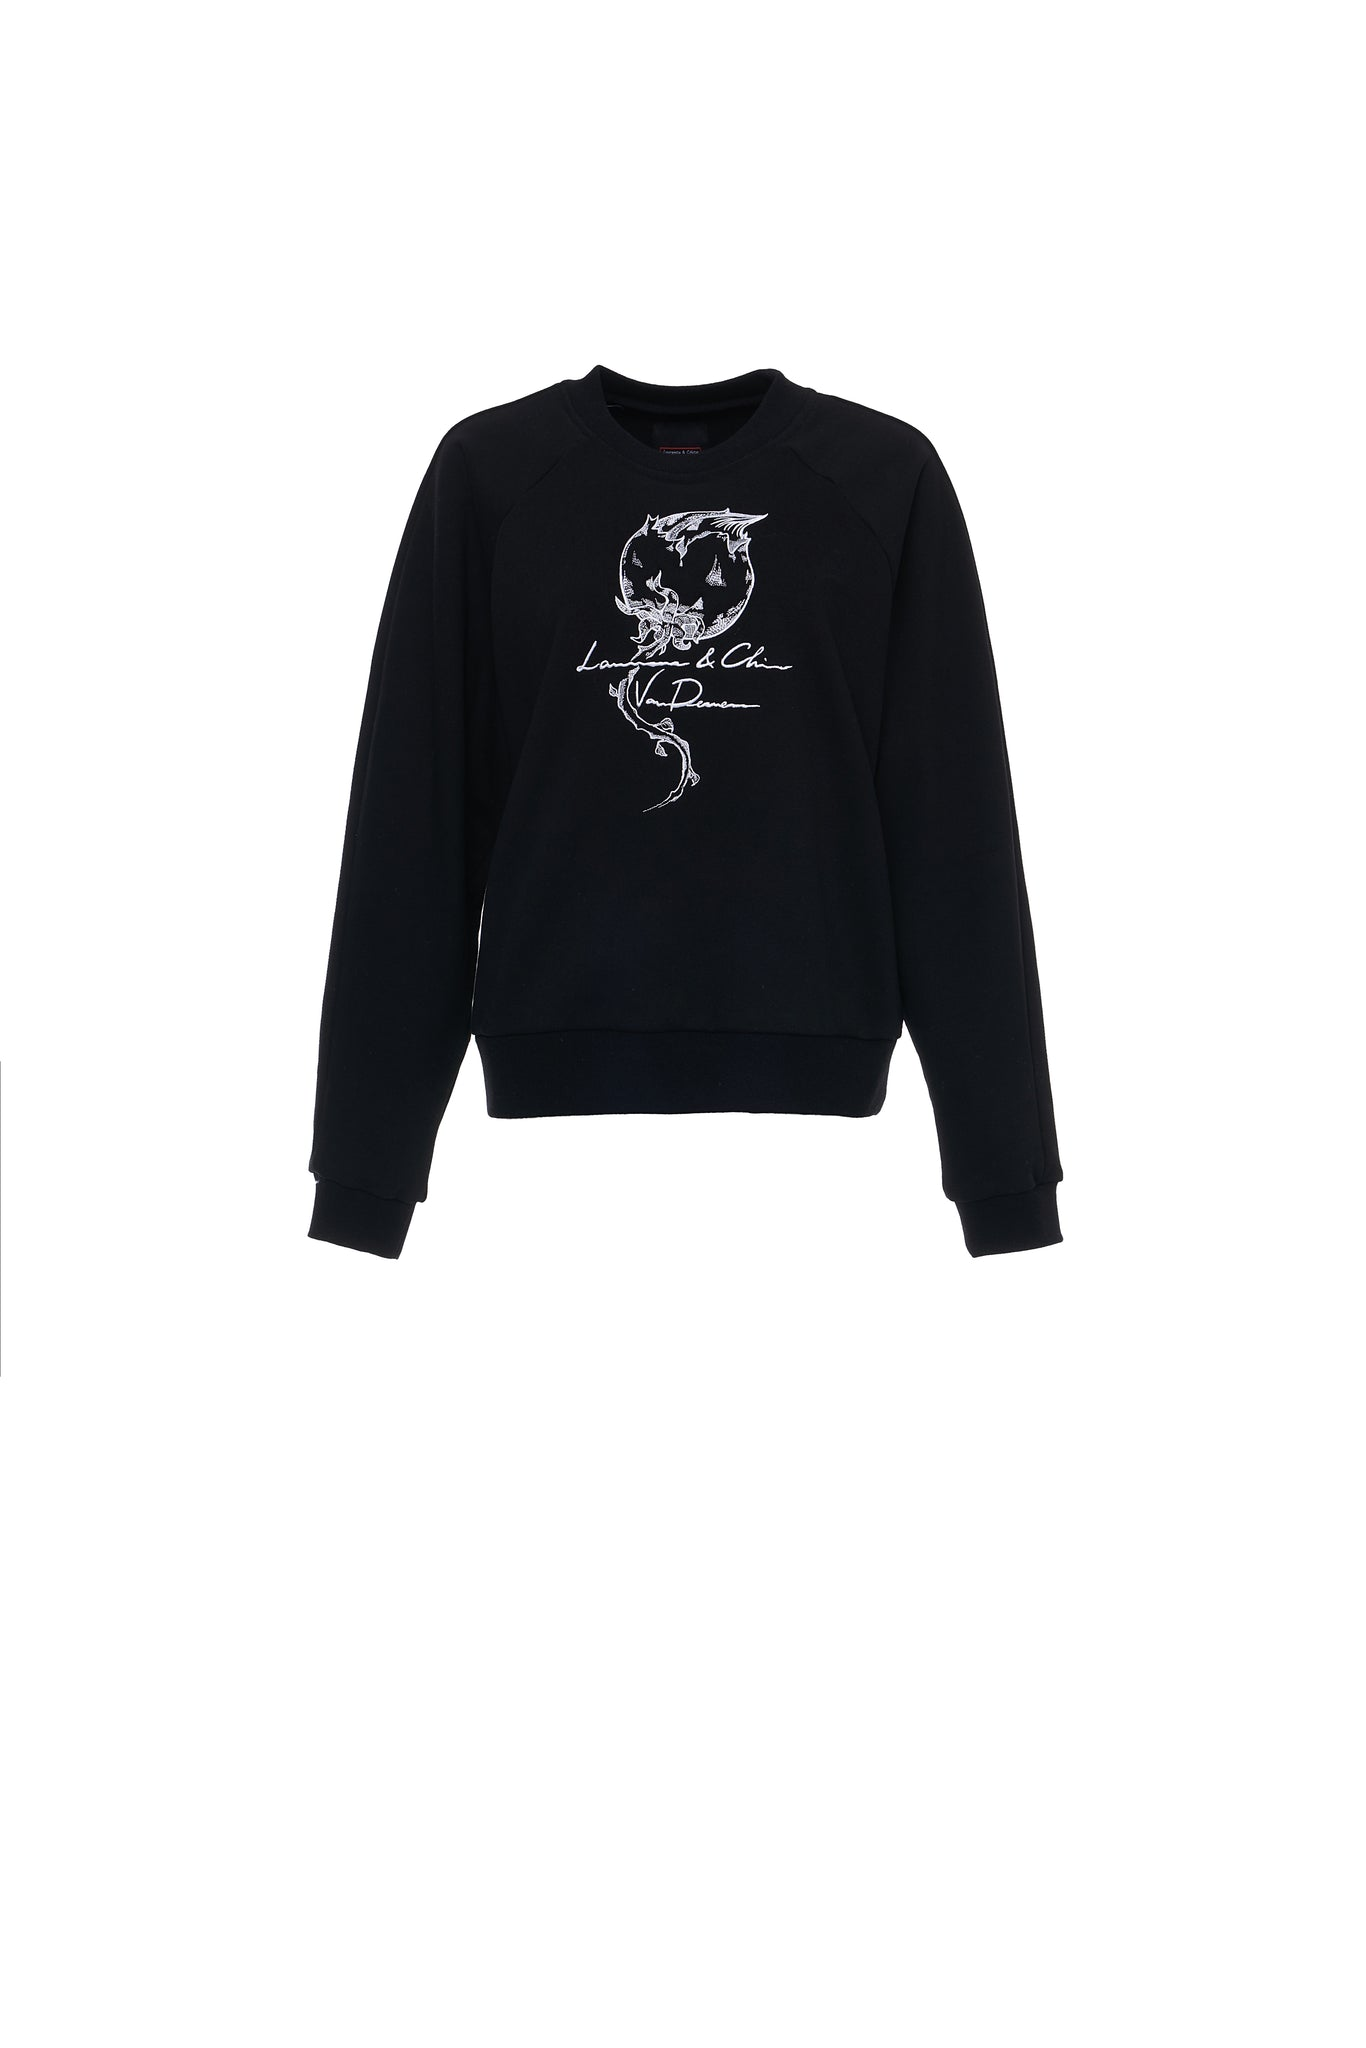 Cotton Flower Embroidery Sweatshirt, Black